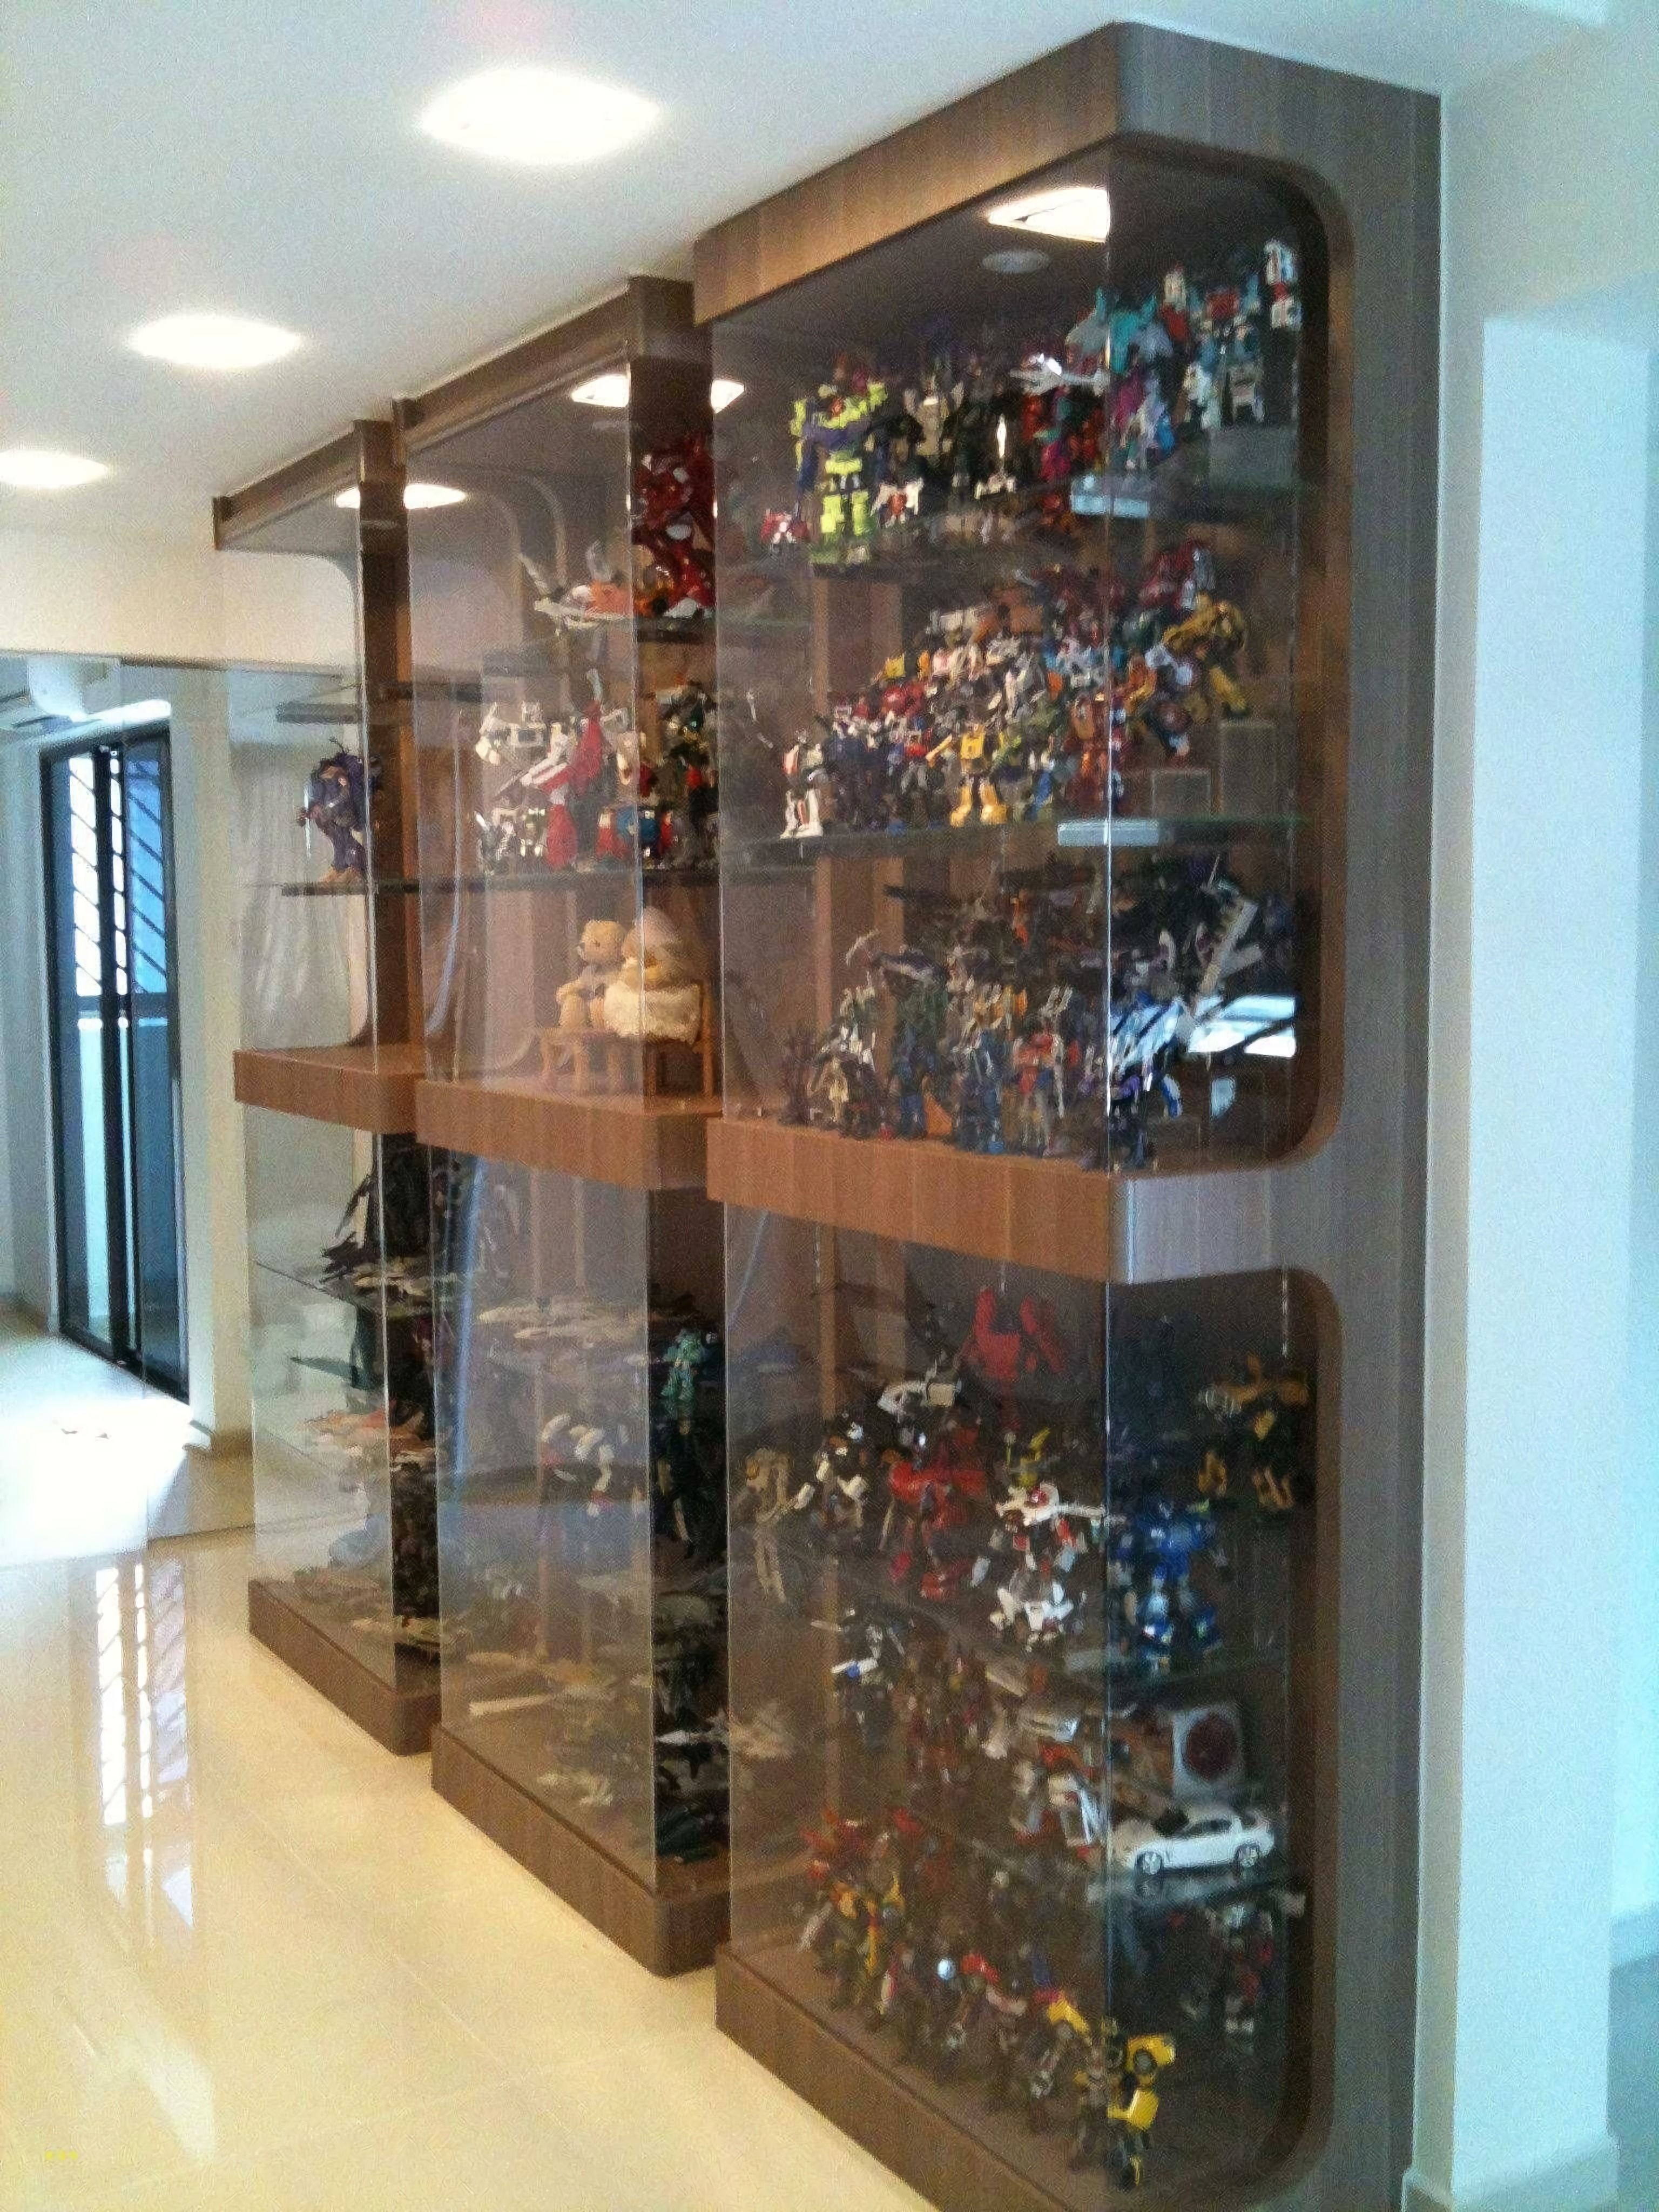 12 Diy Display Cases Ideas Which Make Your Stuff More Presentable Enthusiasthome In 2020 Glass Cabinets Display Glass Display Case Diy Display